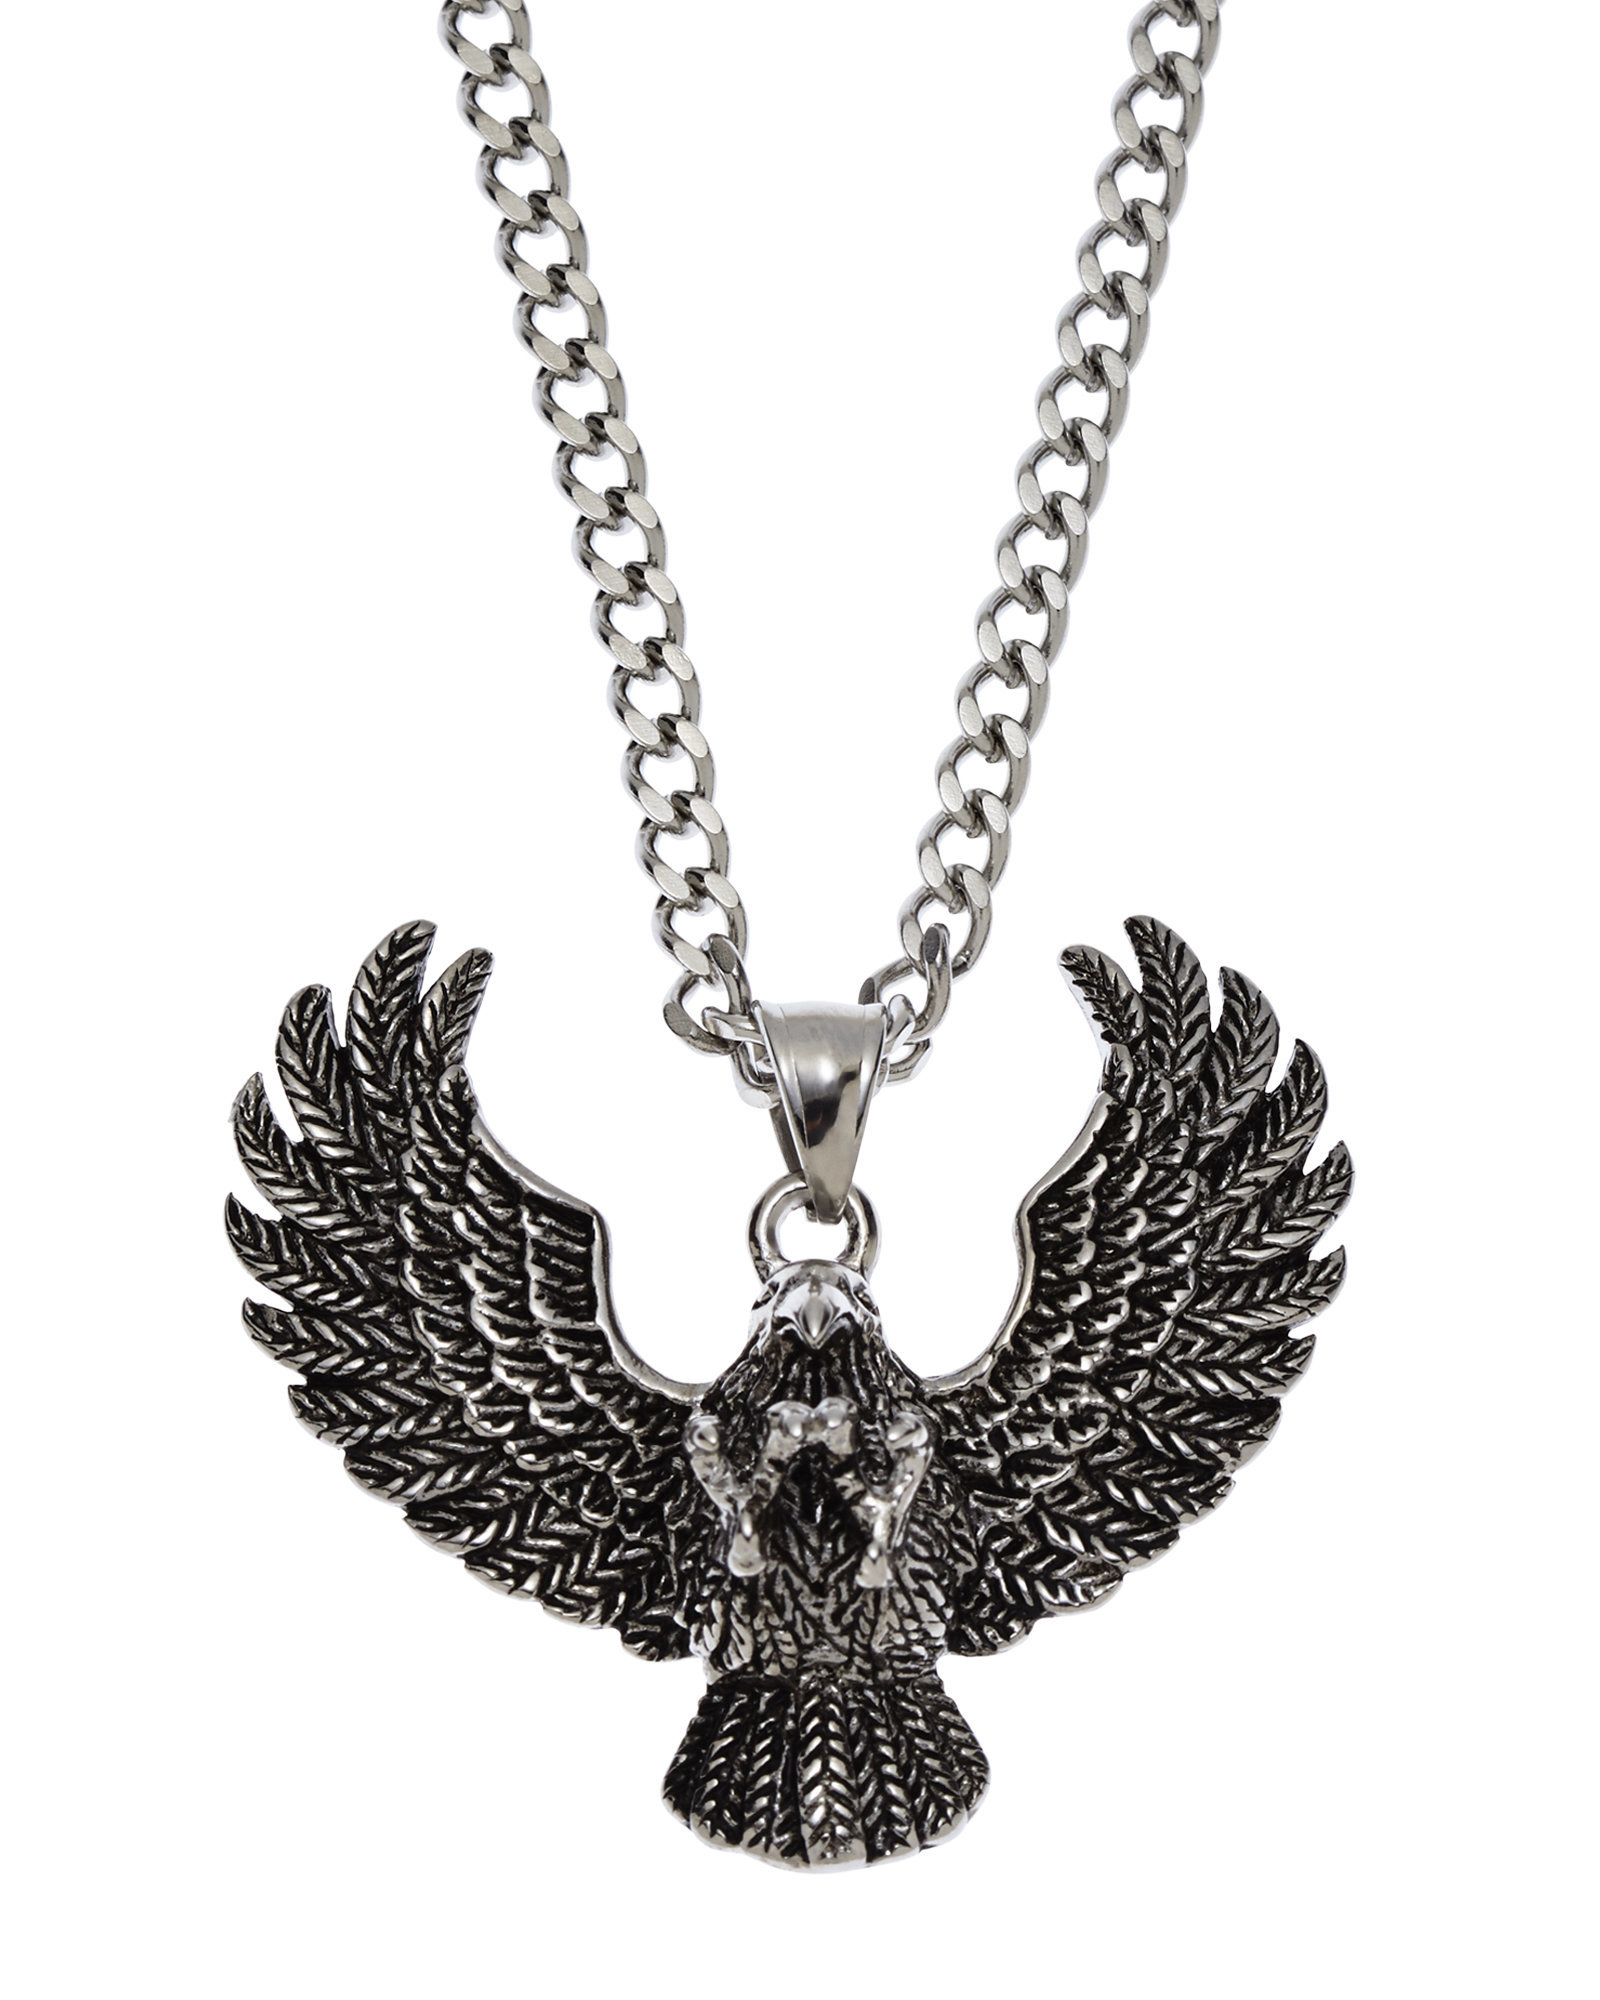 au eagle jewellery pendant from com gold c buy mens q fishpond online original